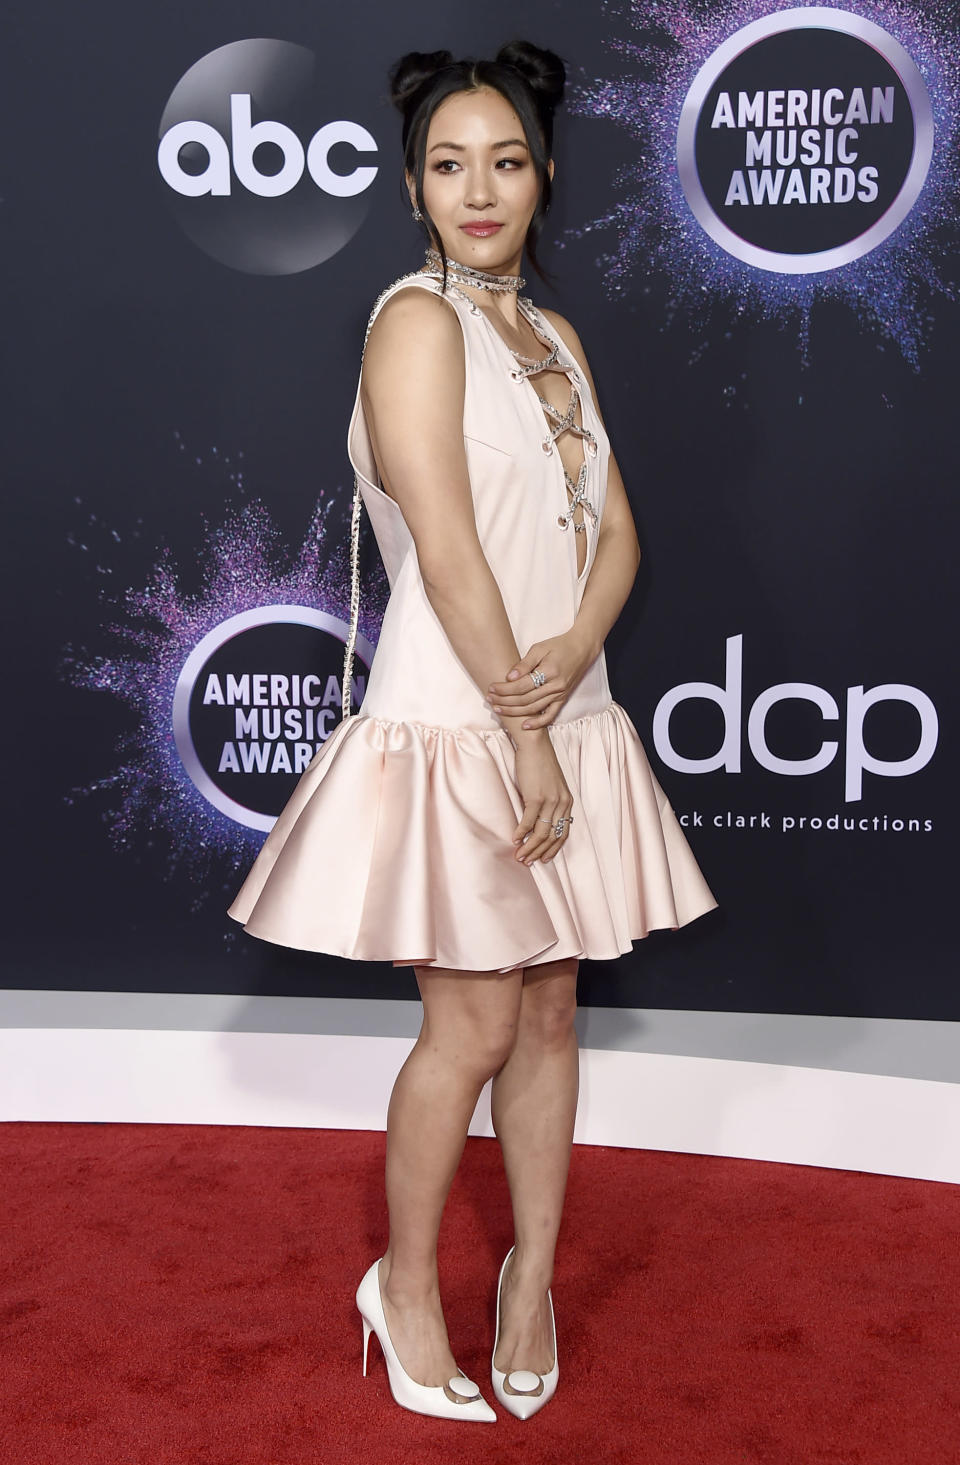 FILE - Constance Wu arrives at the American Music Awards on Nov. 24, 2019, in Los Angeles. Wu turns 39 on March 22. (Photo by Jordan Strauss/Invision/AP, File)